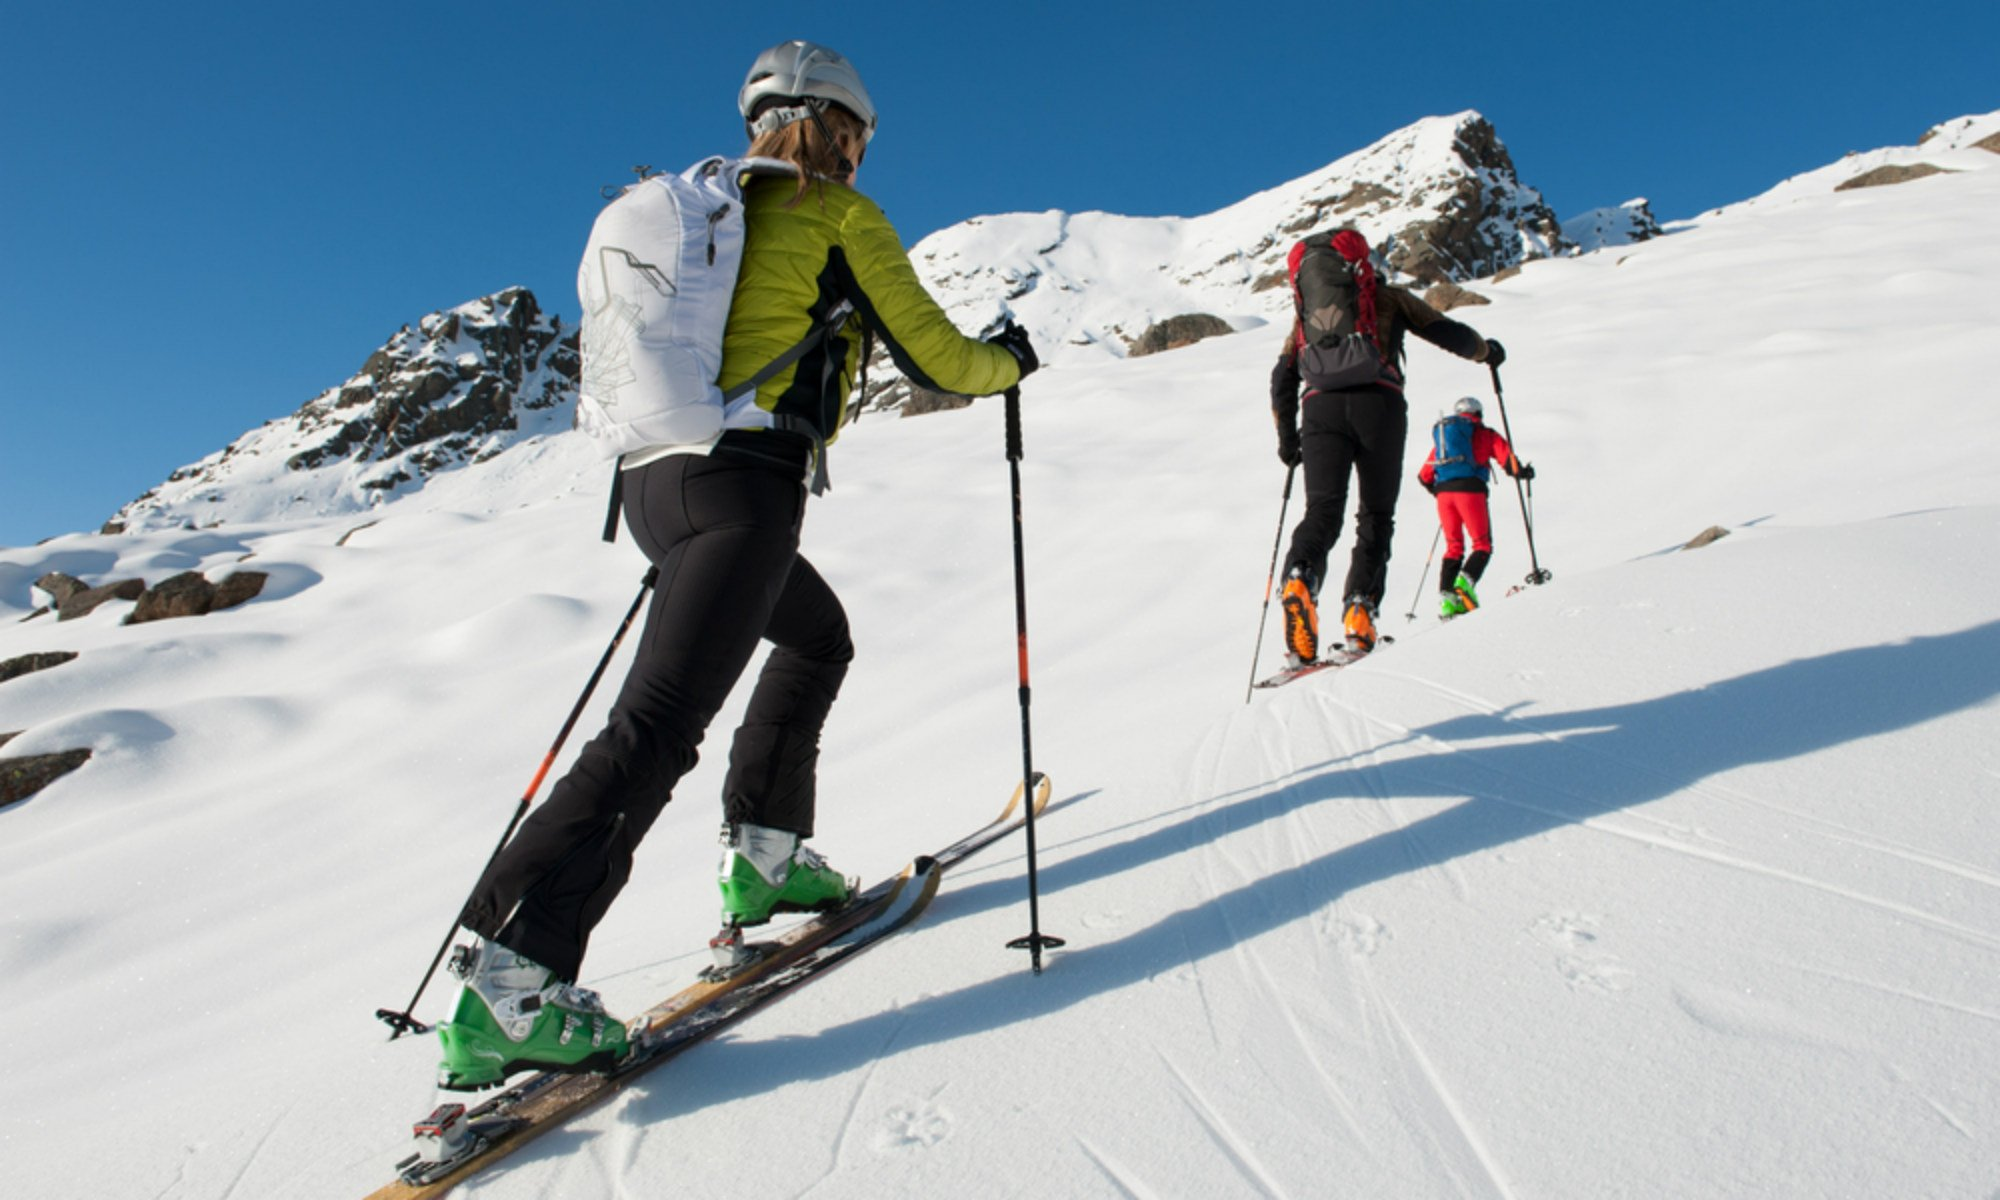 Three people ski touring up a mountain.